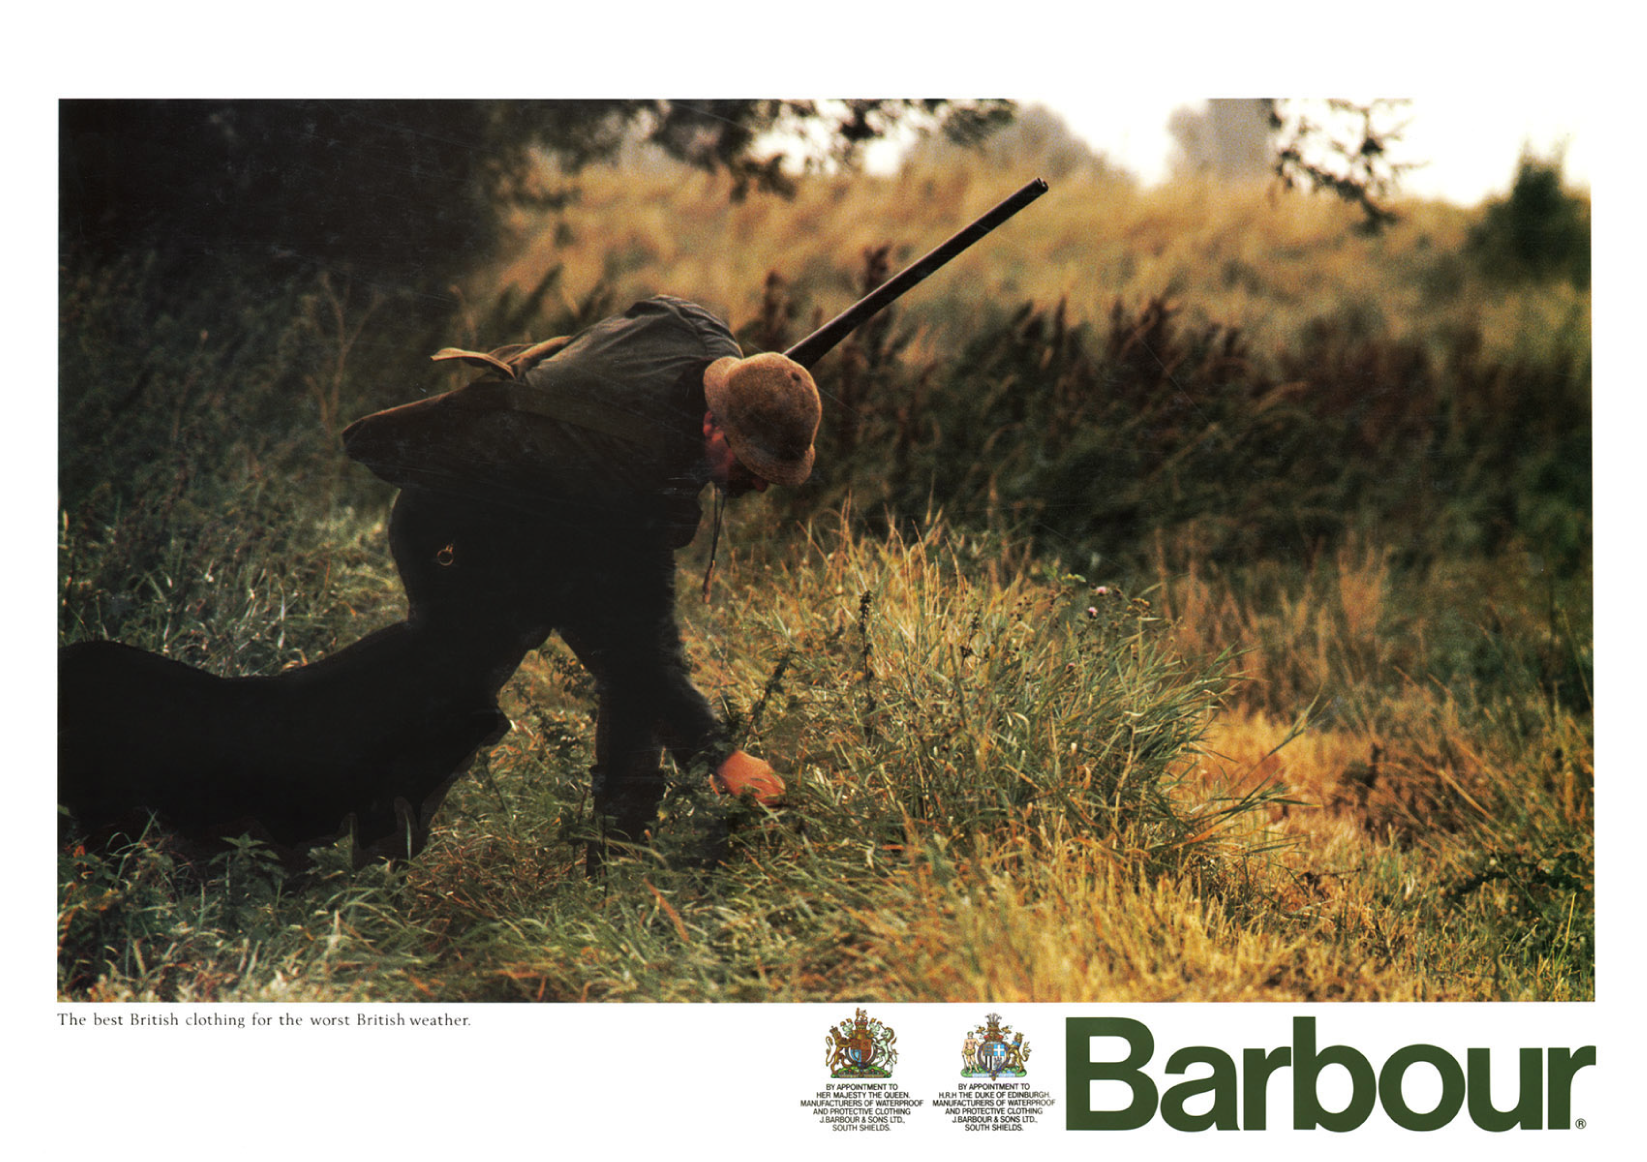 Barbour recieved a second Royal Warrant